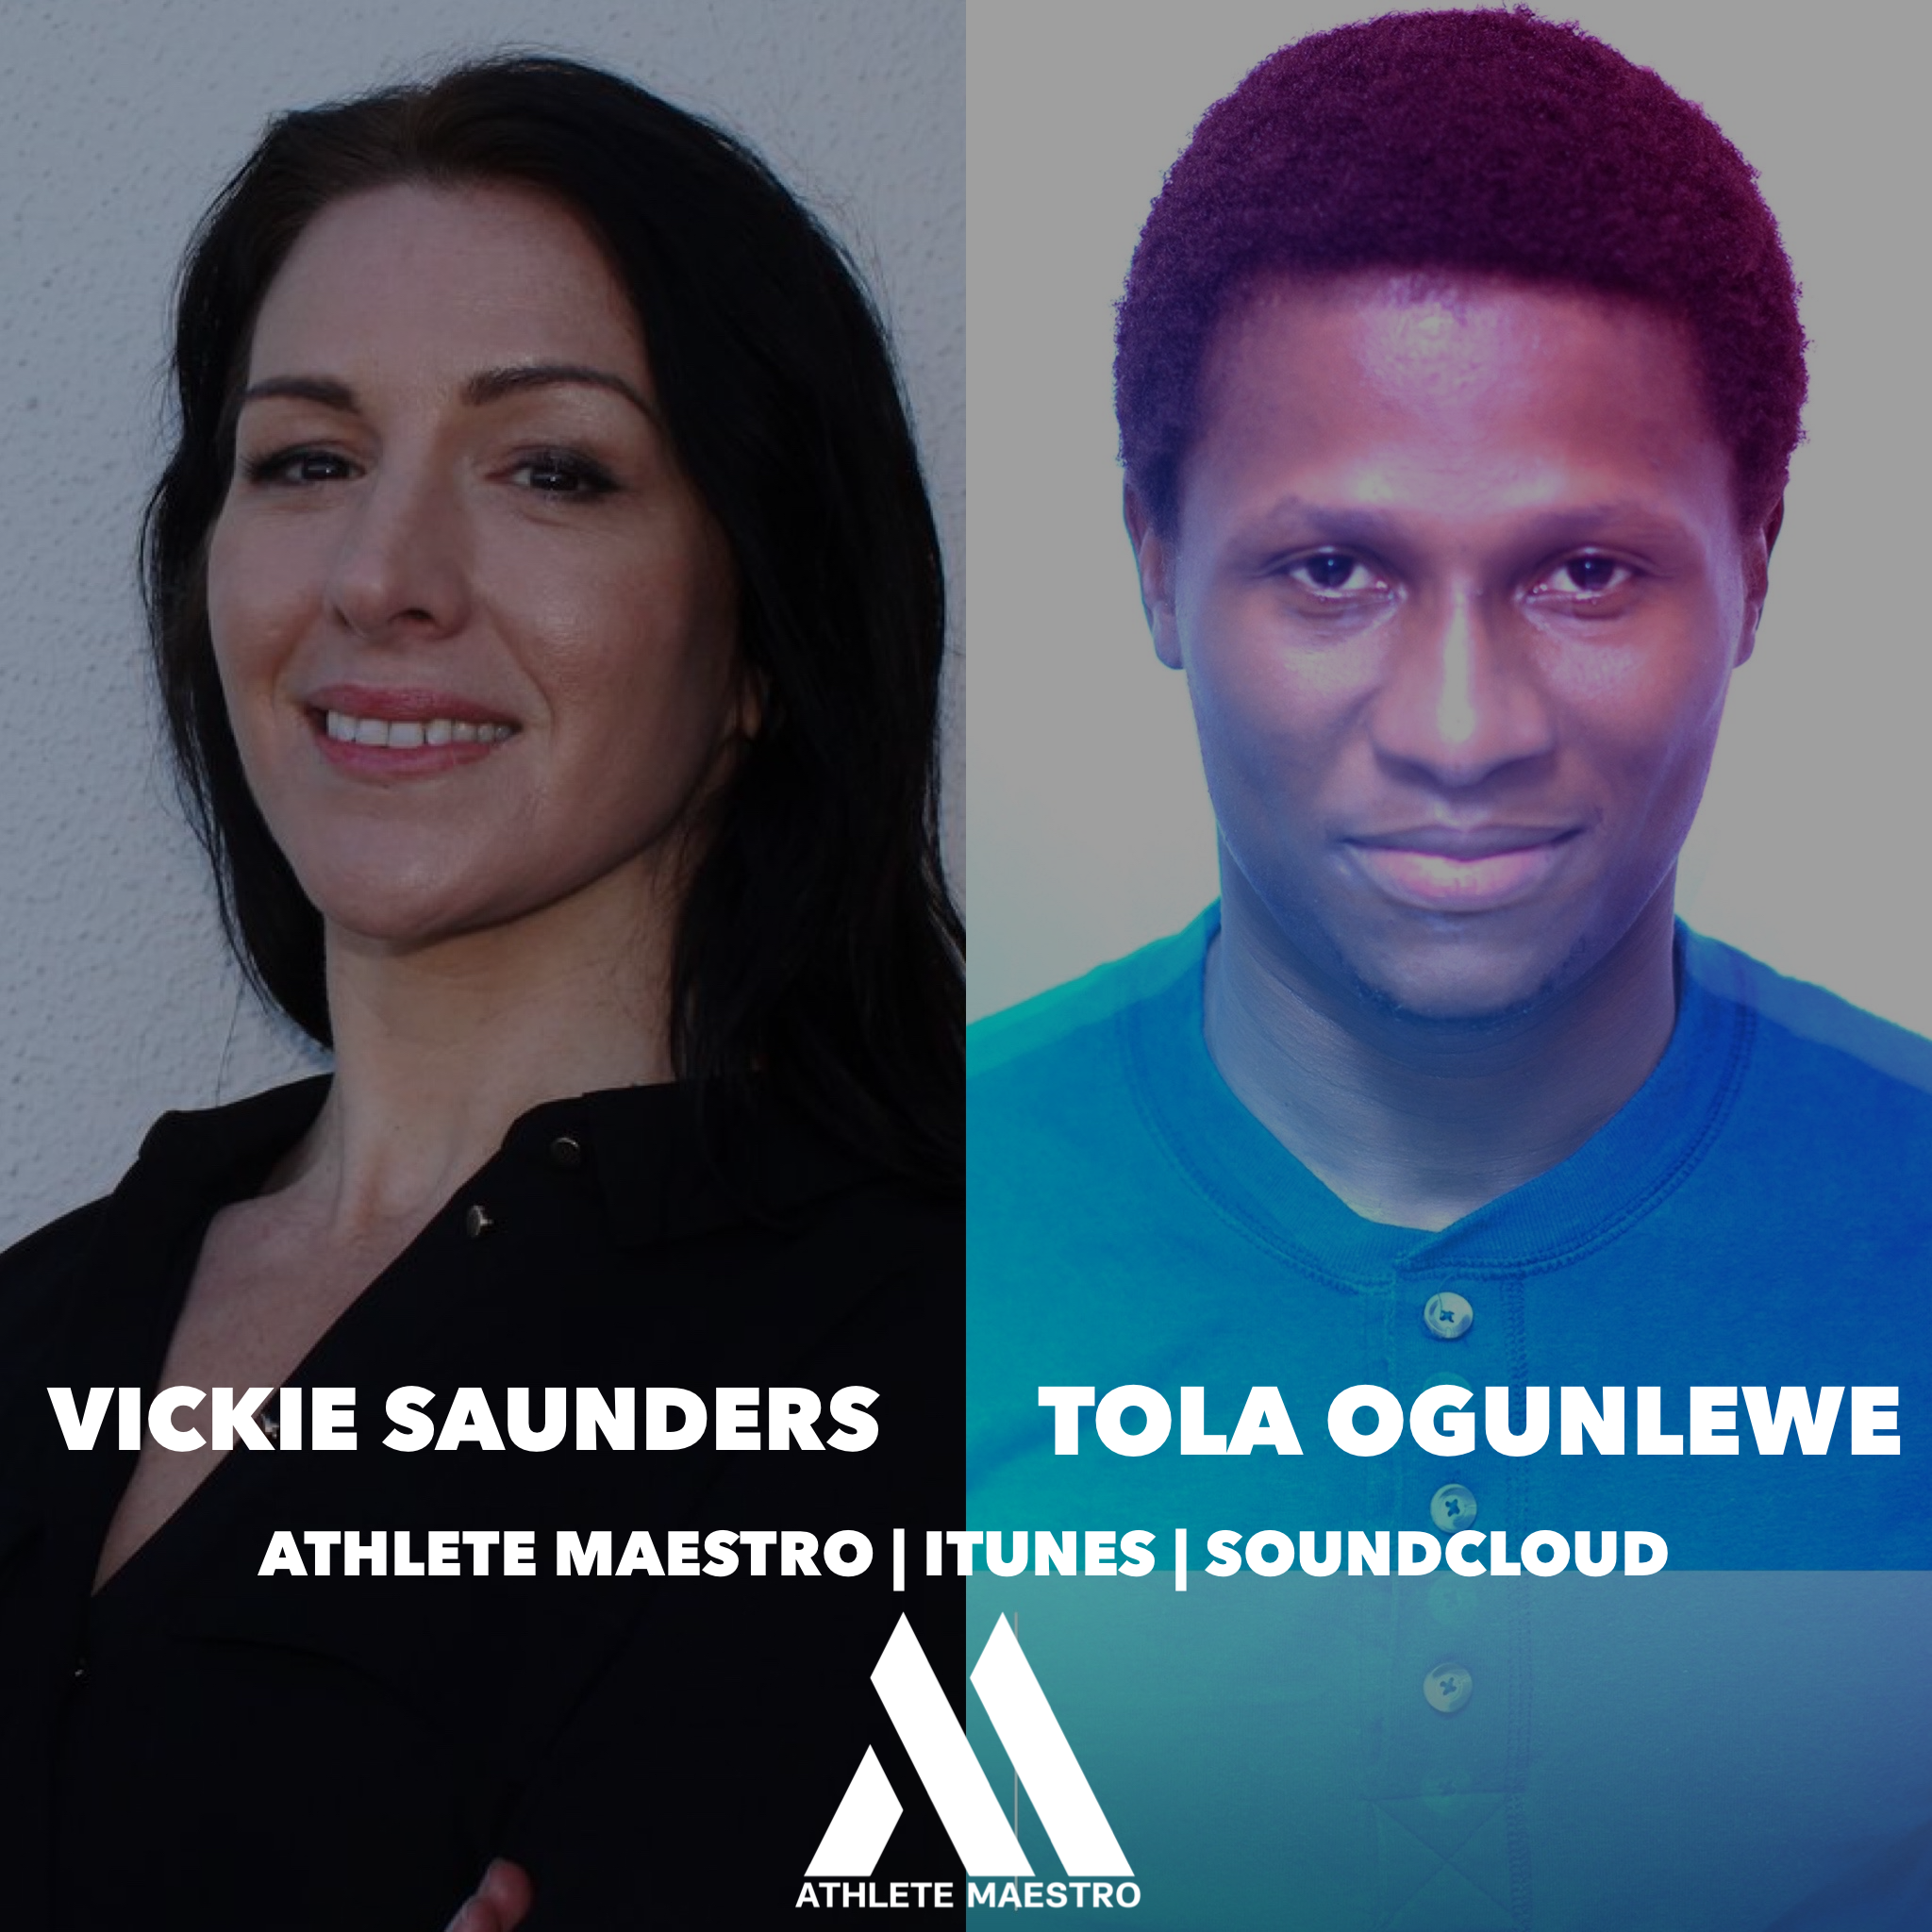 How To Build Your Brand And Attract Sponsors As A Young Athlete with Athlete Banding Expert Vickie Saunders